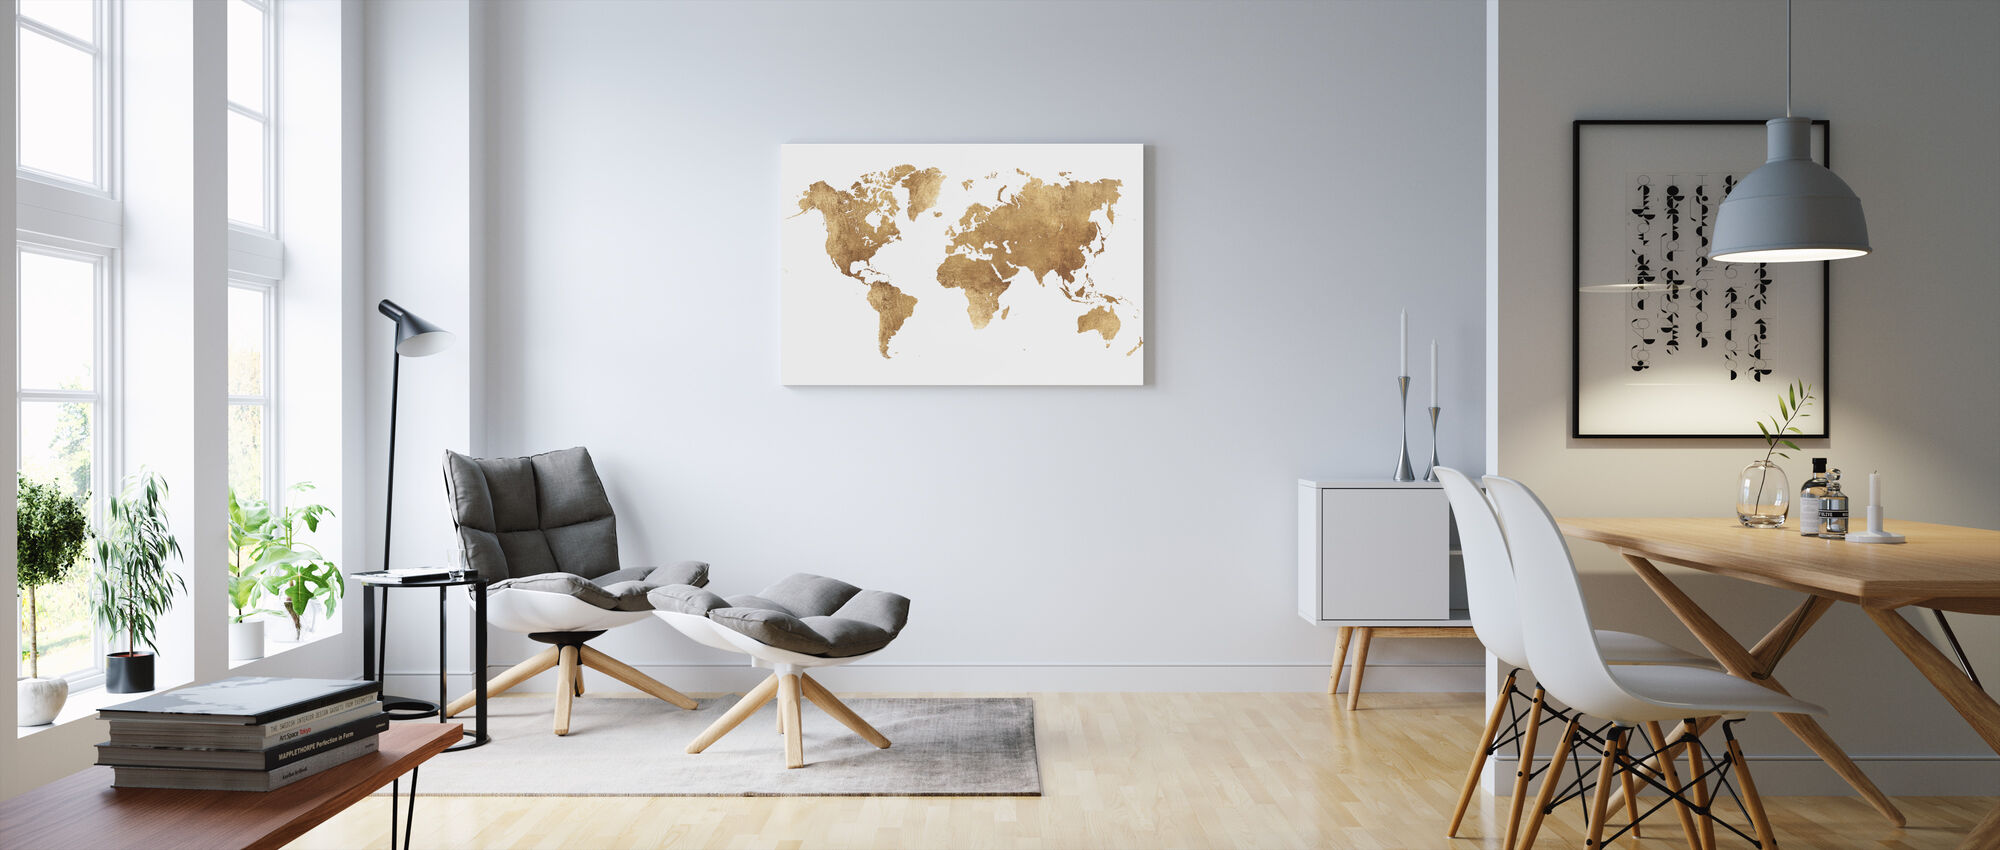 World Map Brushed Metal - Canvas print - Living Room